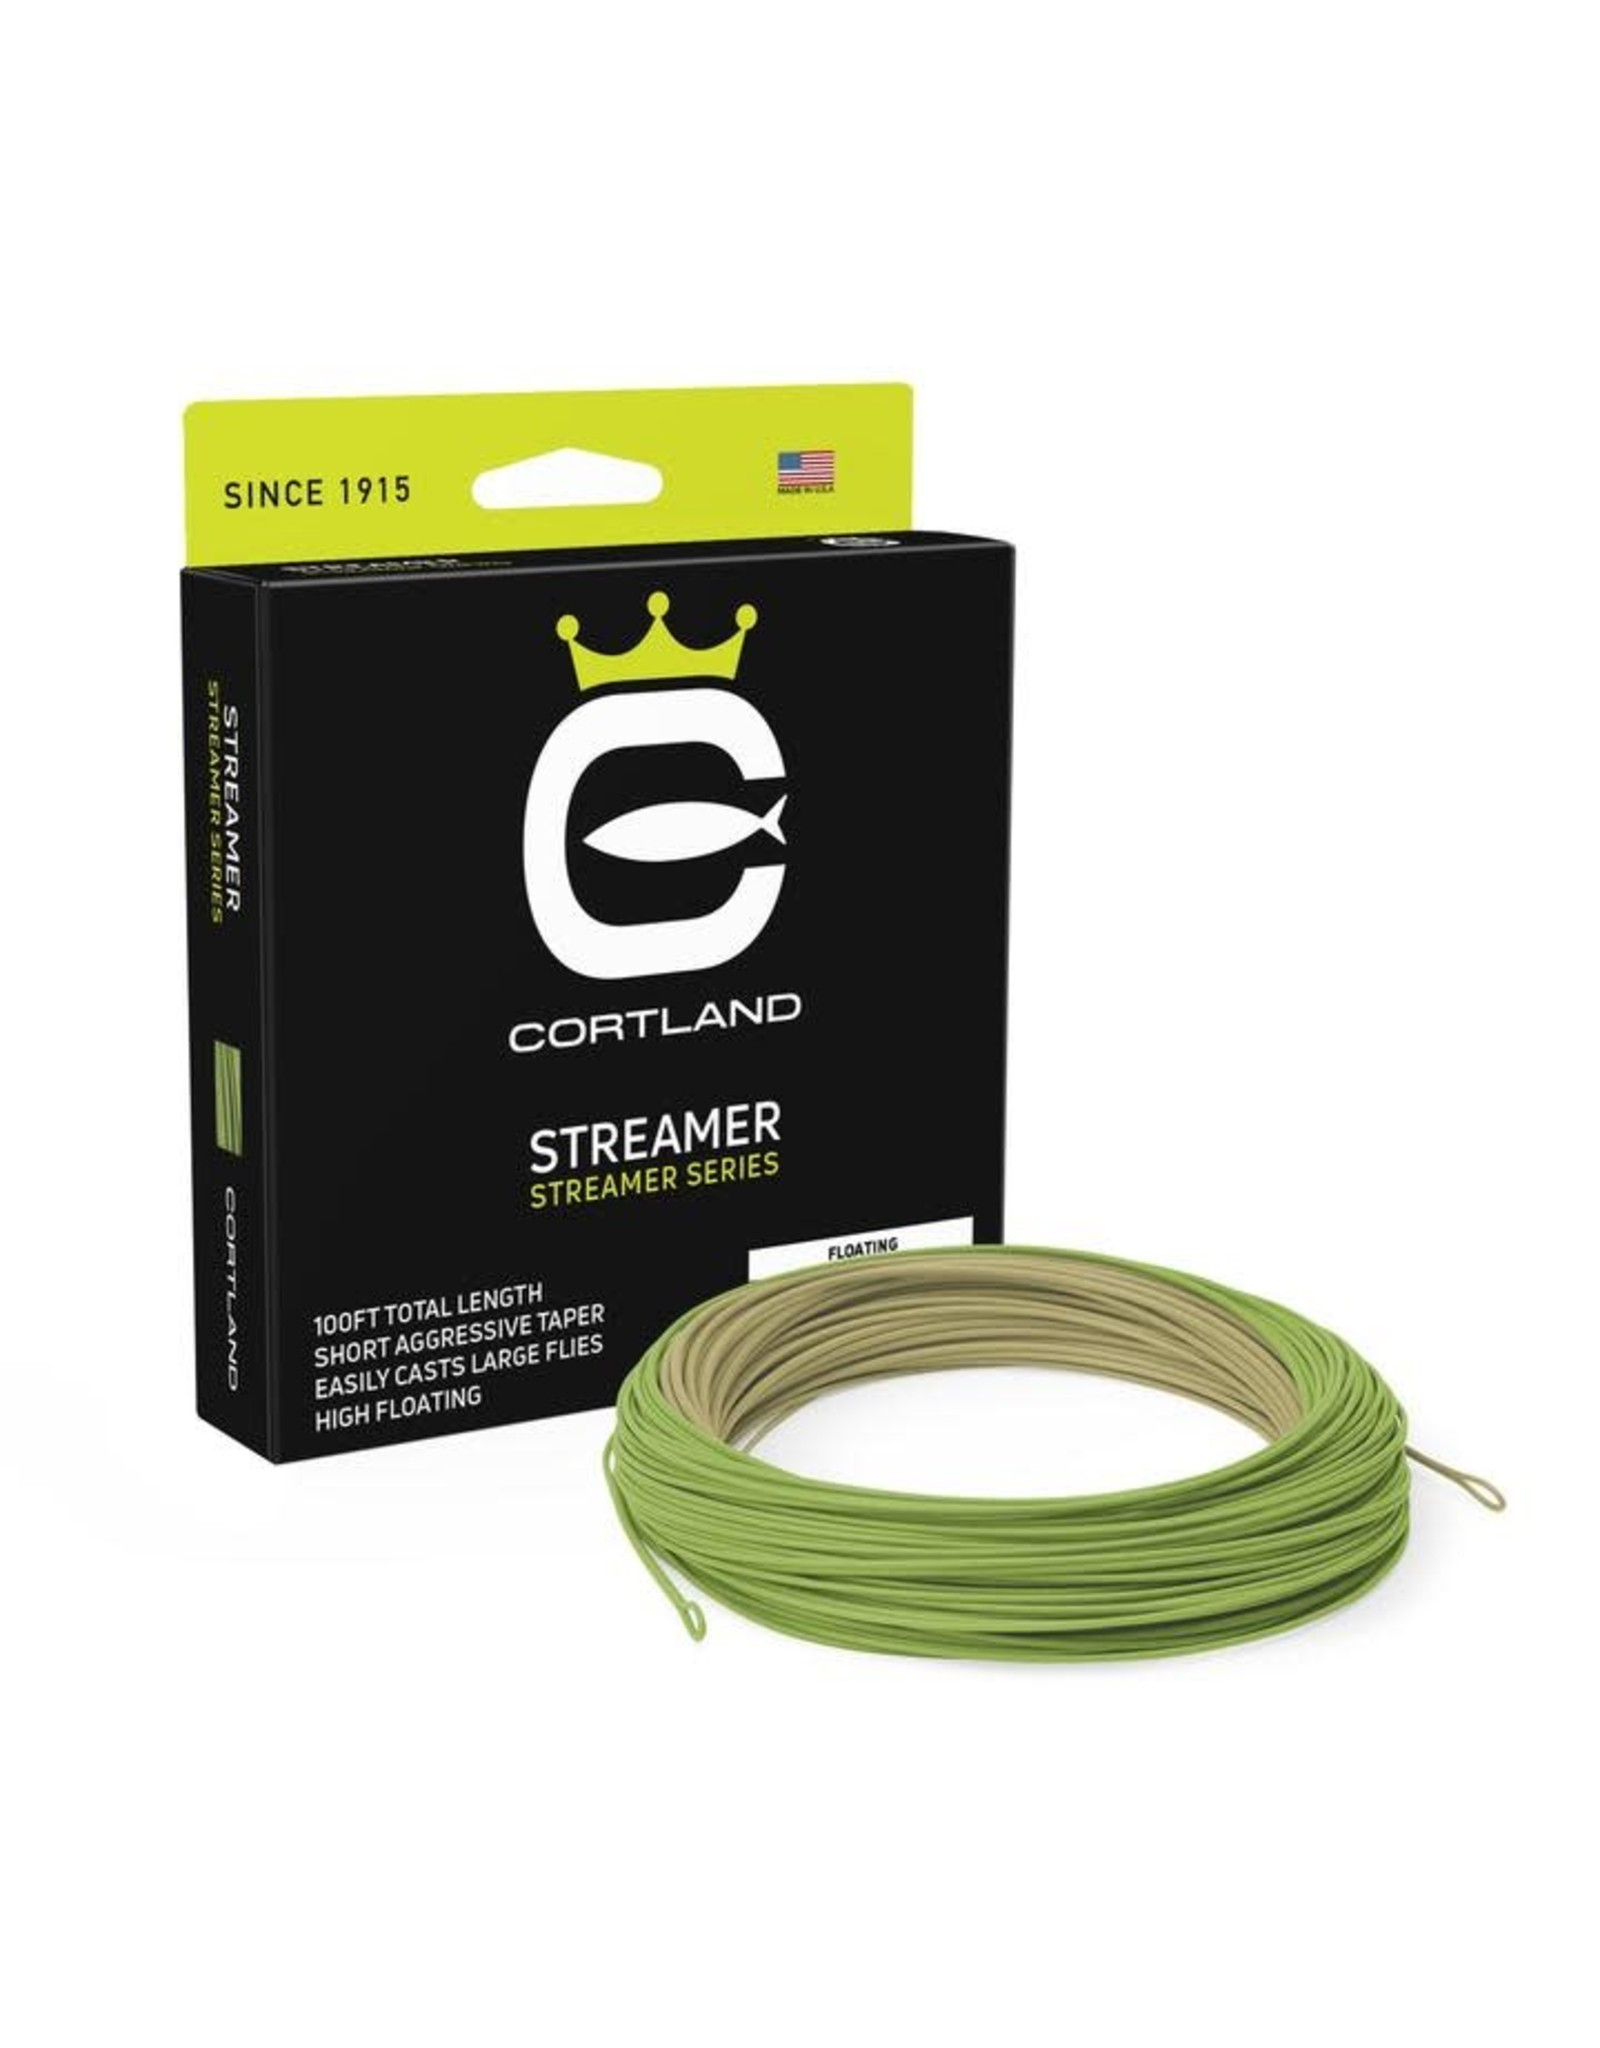 Cortland Line Cortland Streamer Series Floating